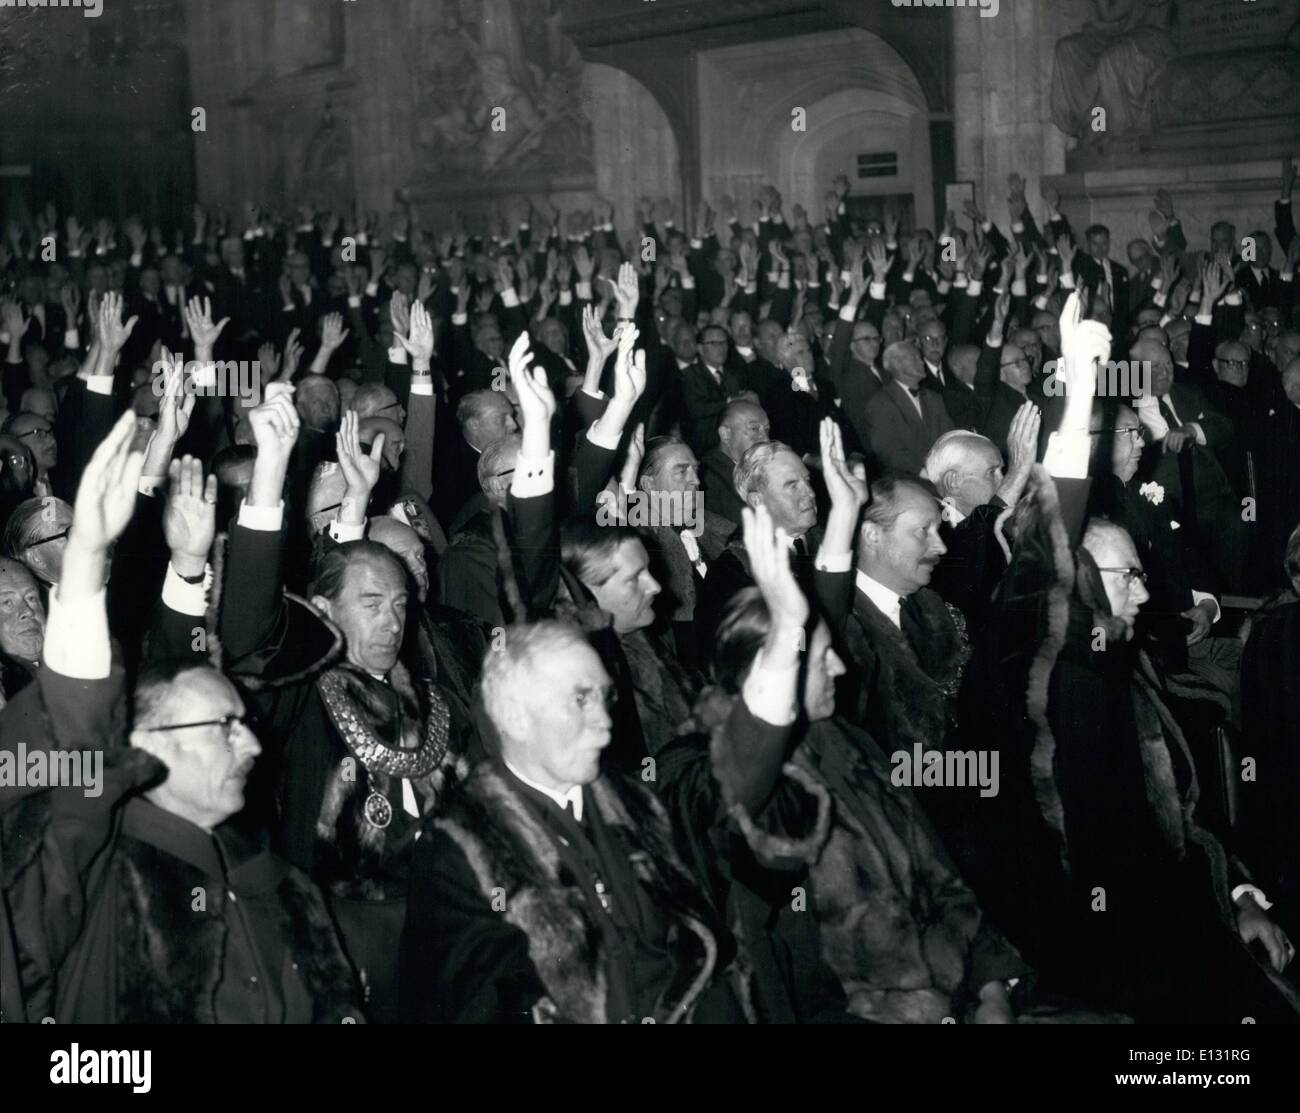 Feb. 26, 2012 - Election Of Sheriffs: The Livery men of the City of London assembled today in the Common Hall to appoint among themselves two sheriffs. There were three candidates and a poll was demanded. Photo shows Hands rainsed by the Livery men during the voting. - Stock Image